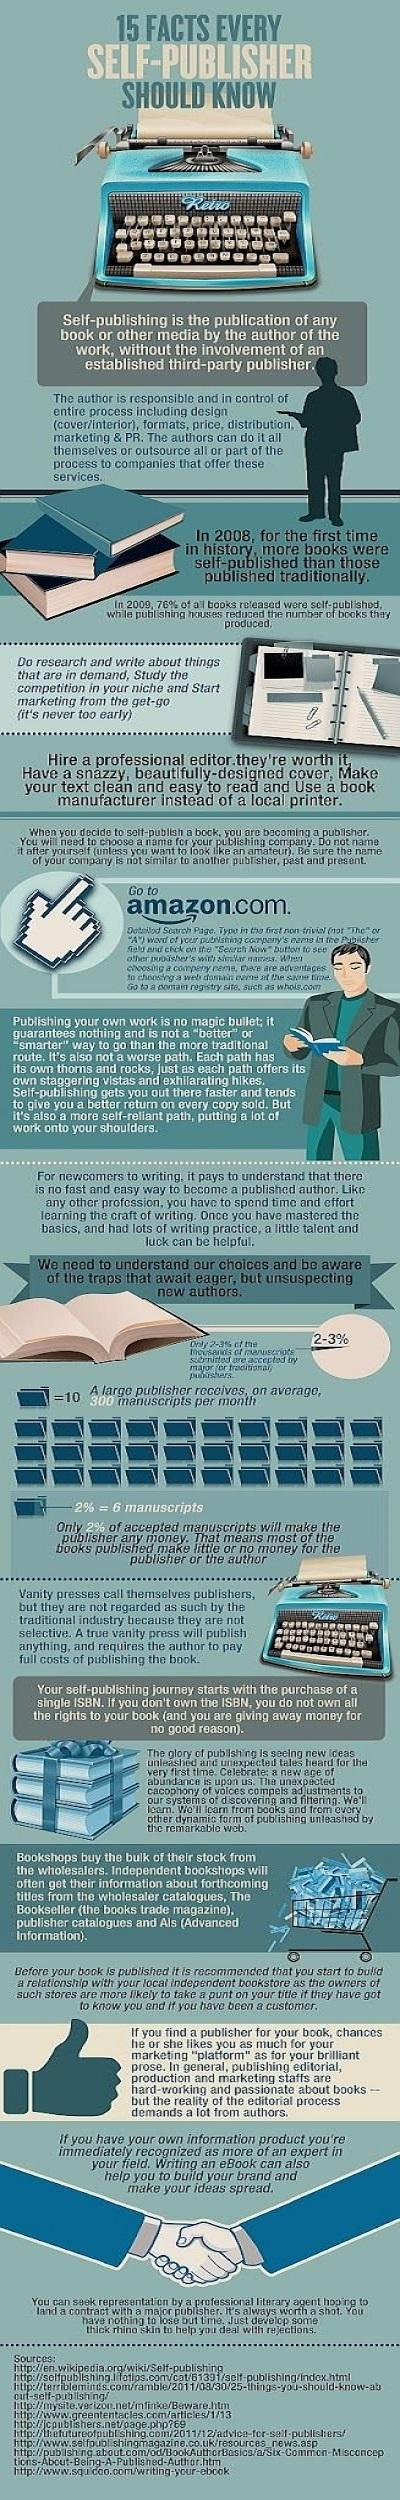 Facts For Self-Publishers Infographic